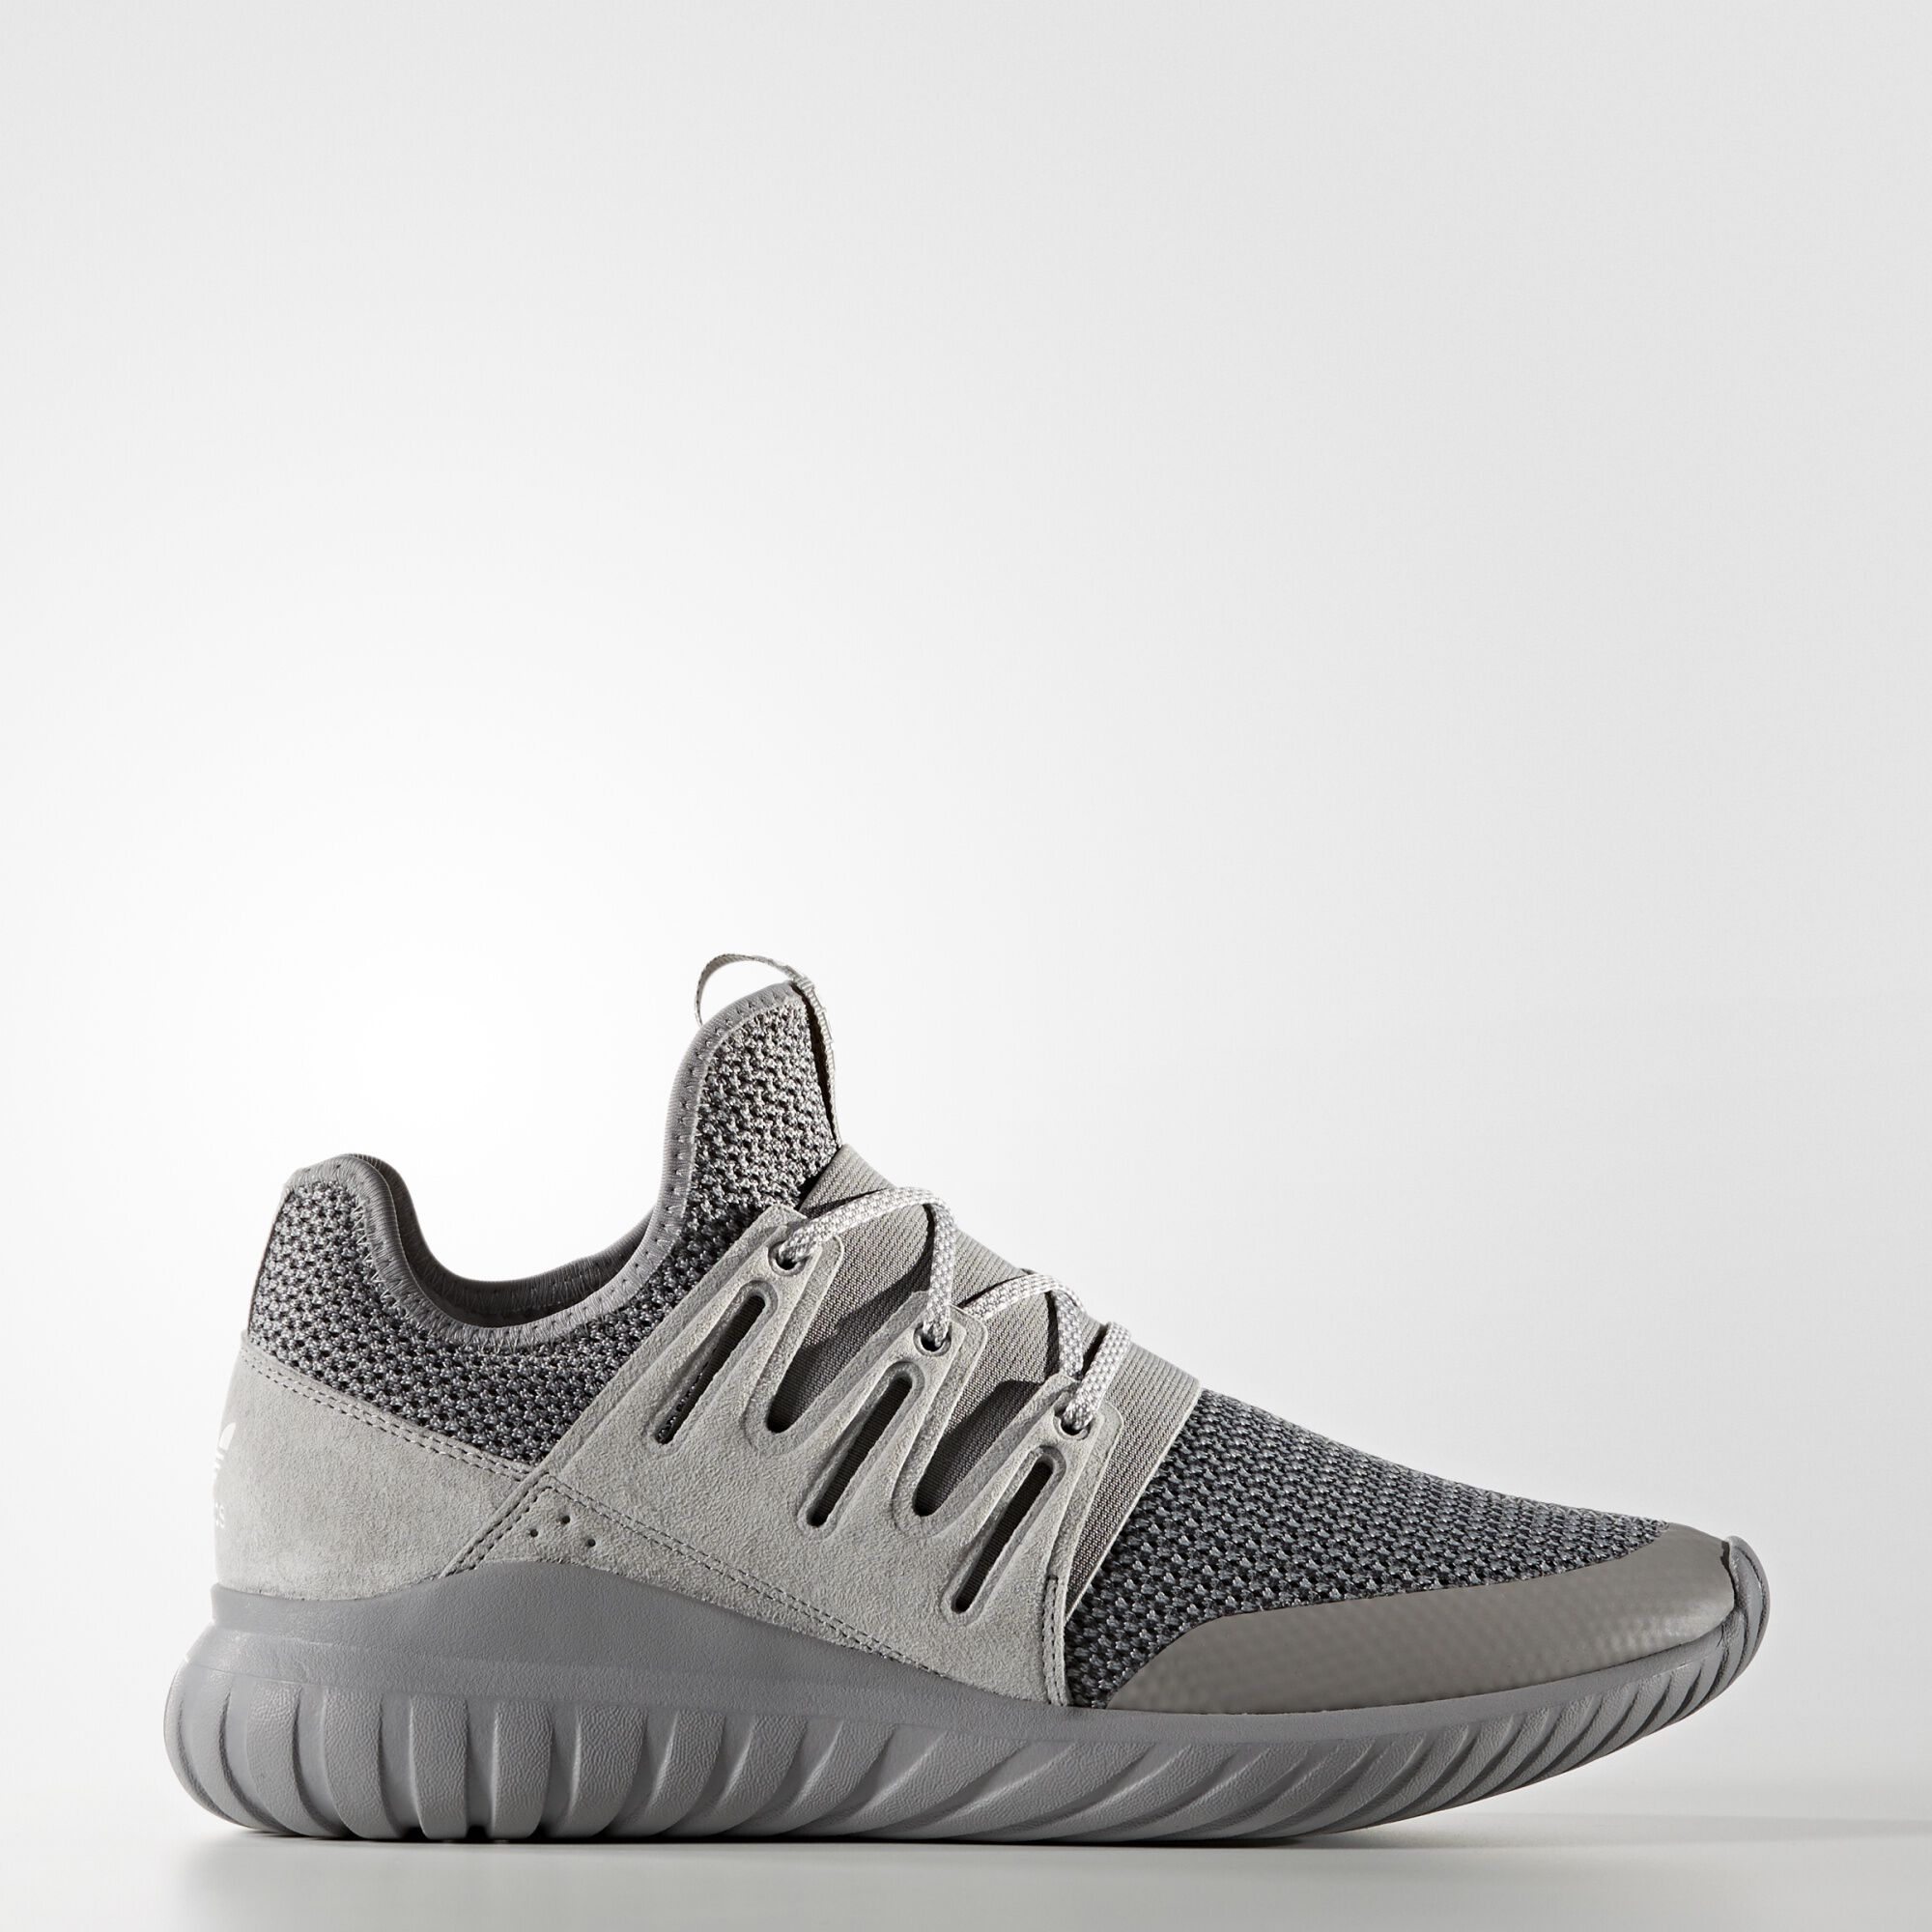 Adidas Tubular High Top White